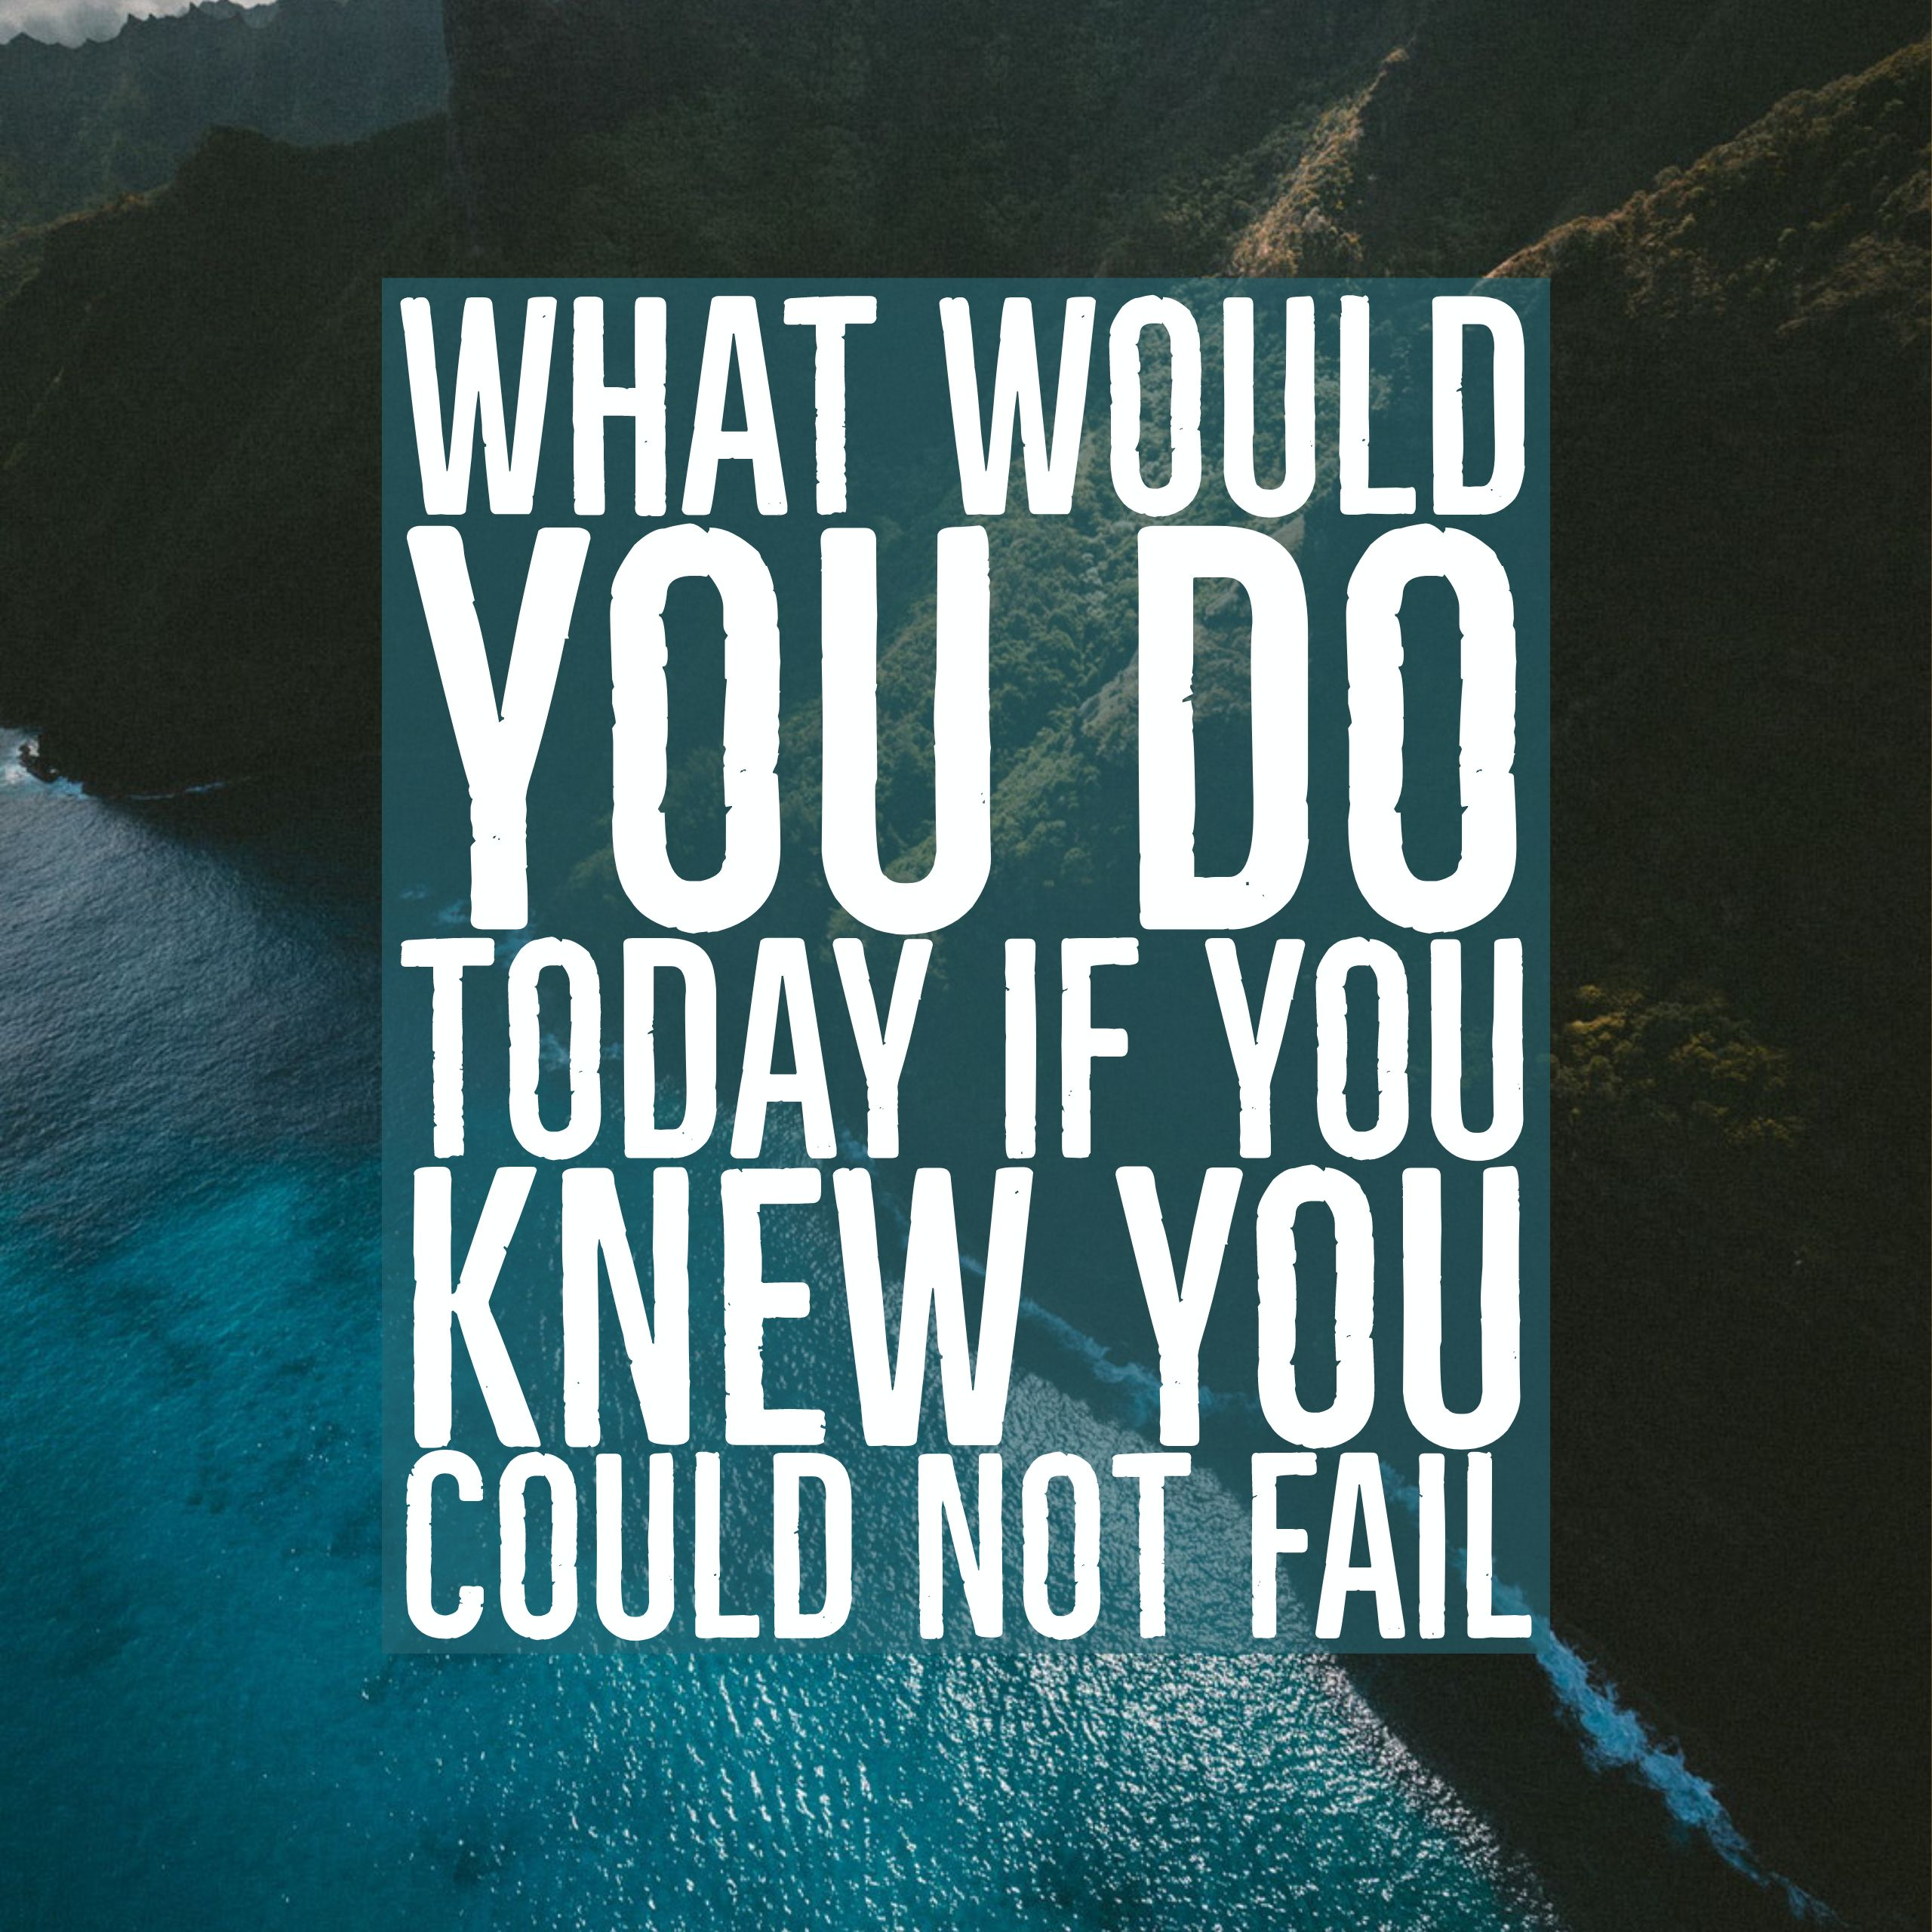 What Would You Do Today If You Knew You Could Not Fail Quotes Dailyinspirationalquotes I Daily Inspiration Quotes Inspirational Quotes Motivational Quotes